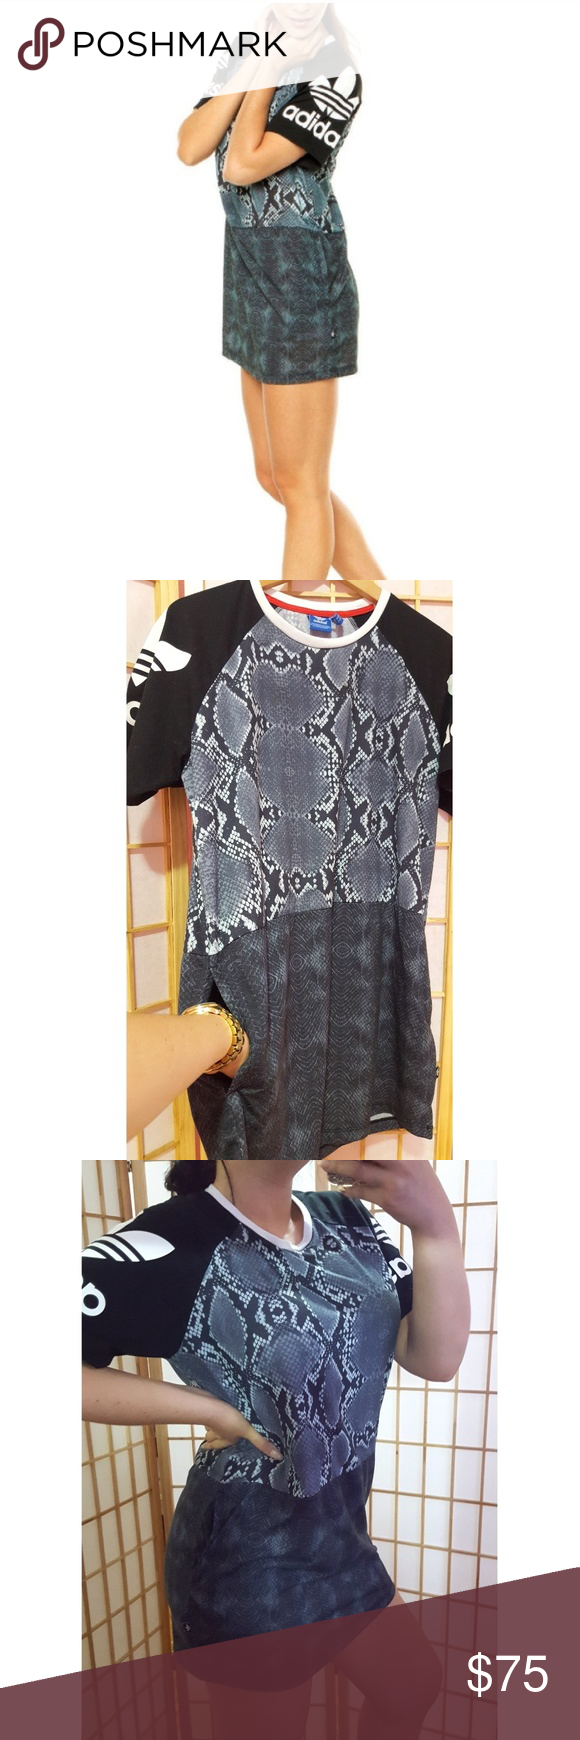 d7e2504cea4 Adidas🖤Snake Print T Shirt Dress M Love this bc it has pockets💃 Great  condition zero flaws Sold out online Can also be worn with leggings as a  tunic ...